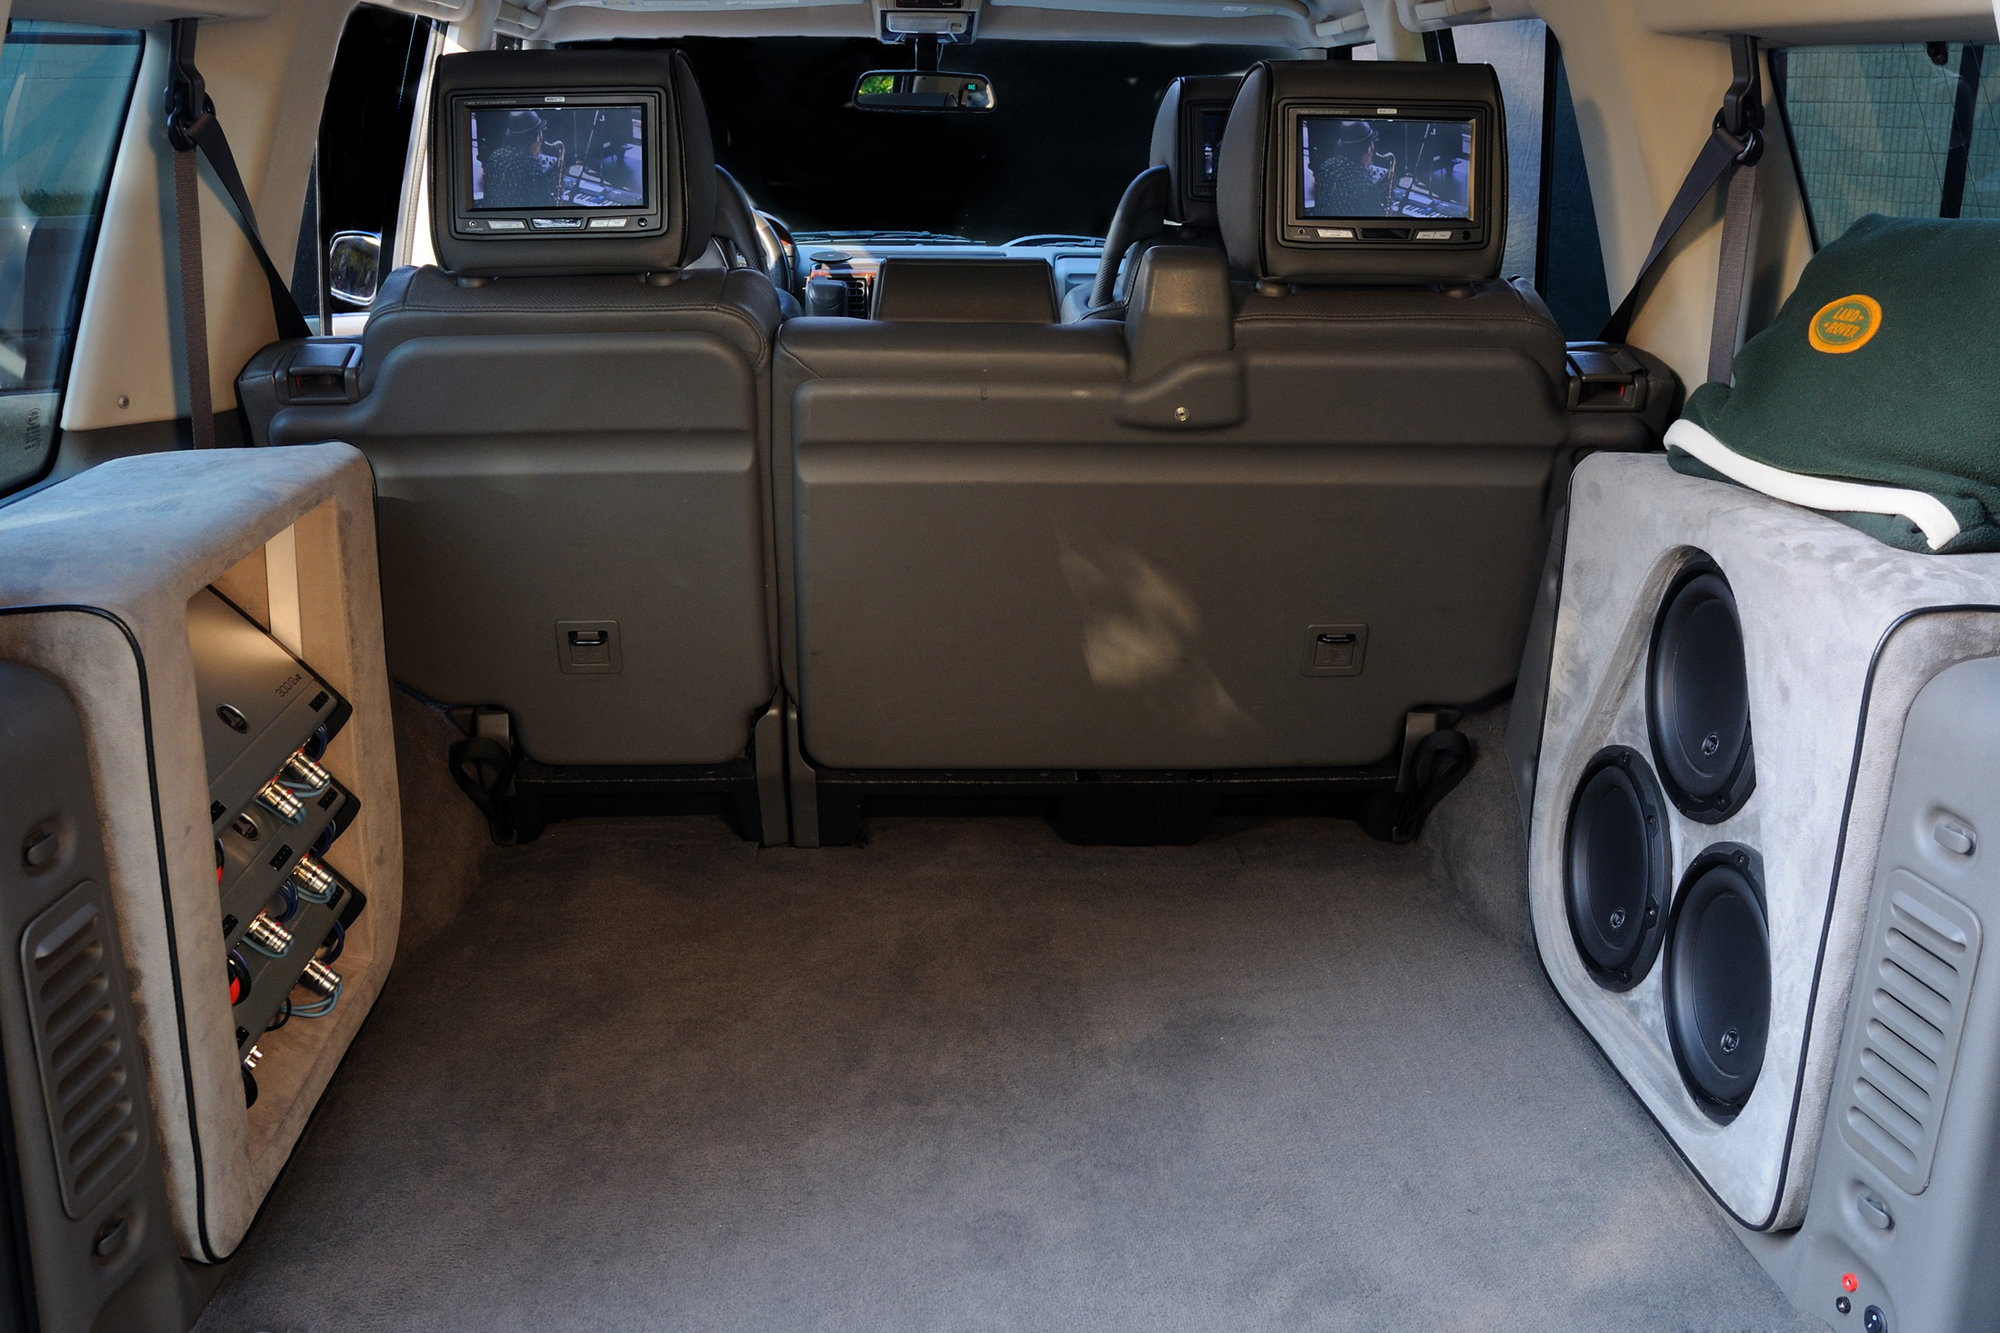 Subwoofer mod!! - Page 3 - Land Rover Forums - Land Rover